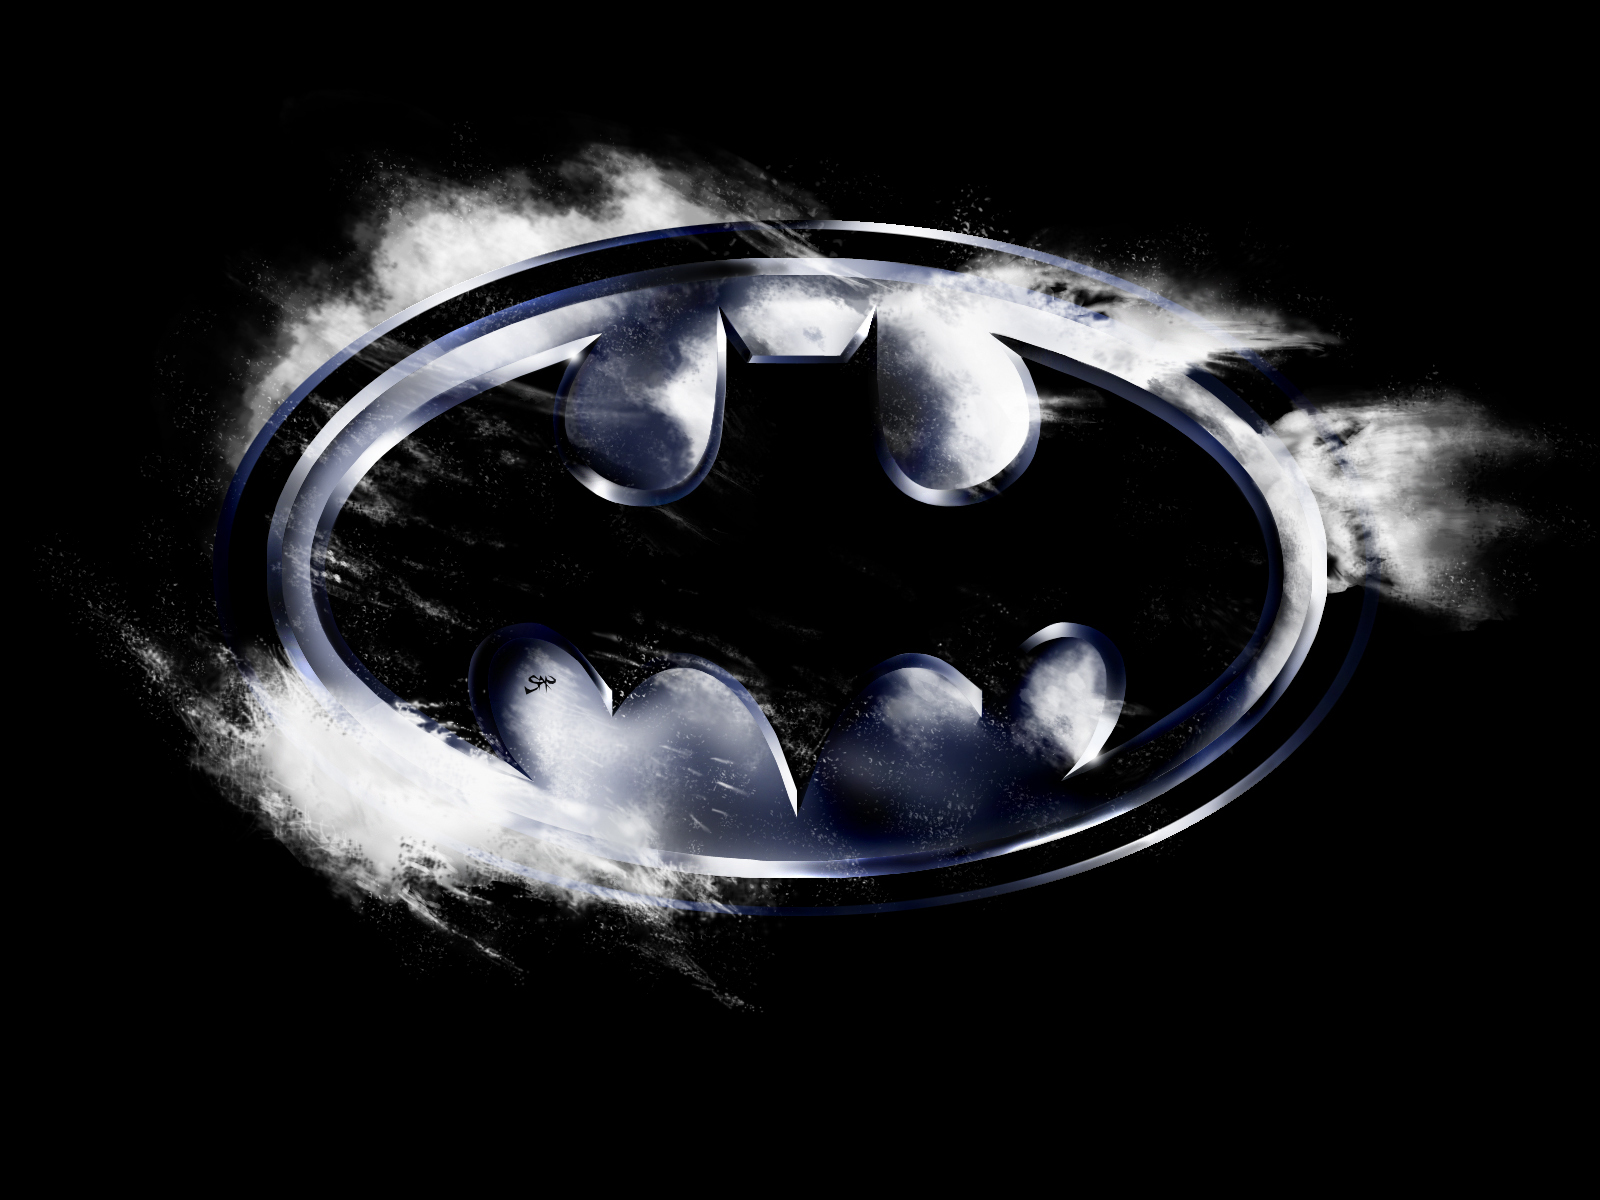 Batman returns images batman returns logo wallpaper hd Batman symbol